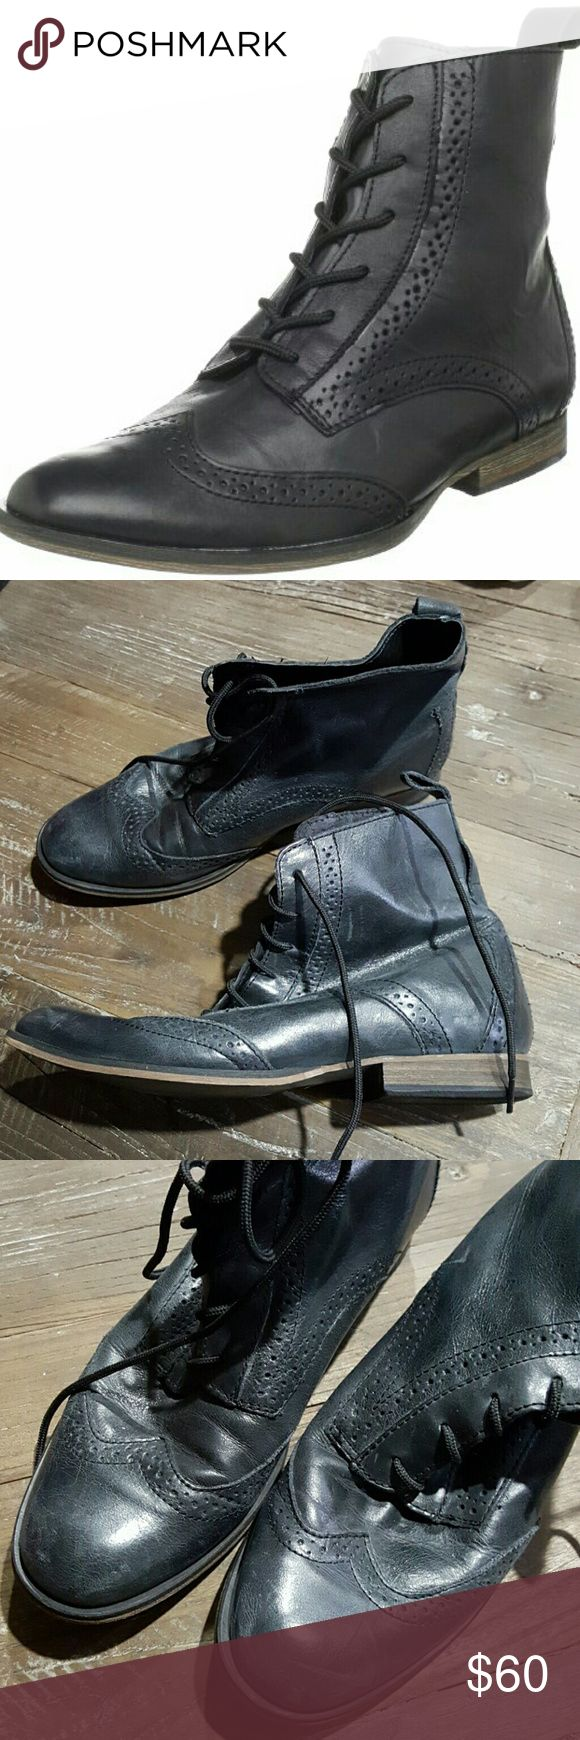 STEVEN by Steve Madden Mertie Black Brogue Boots 7 Briefly worn once indoors with light wear. Granny chic! ;-) Black leather. Steven by Steve Madden Shoes Lace Up Boots